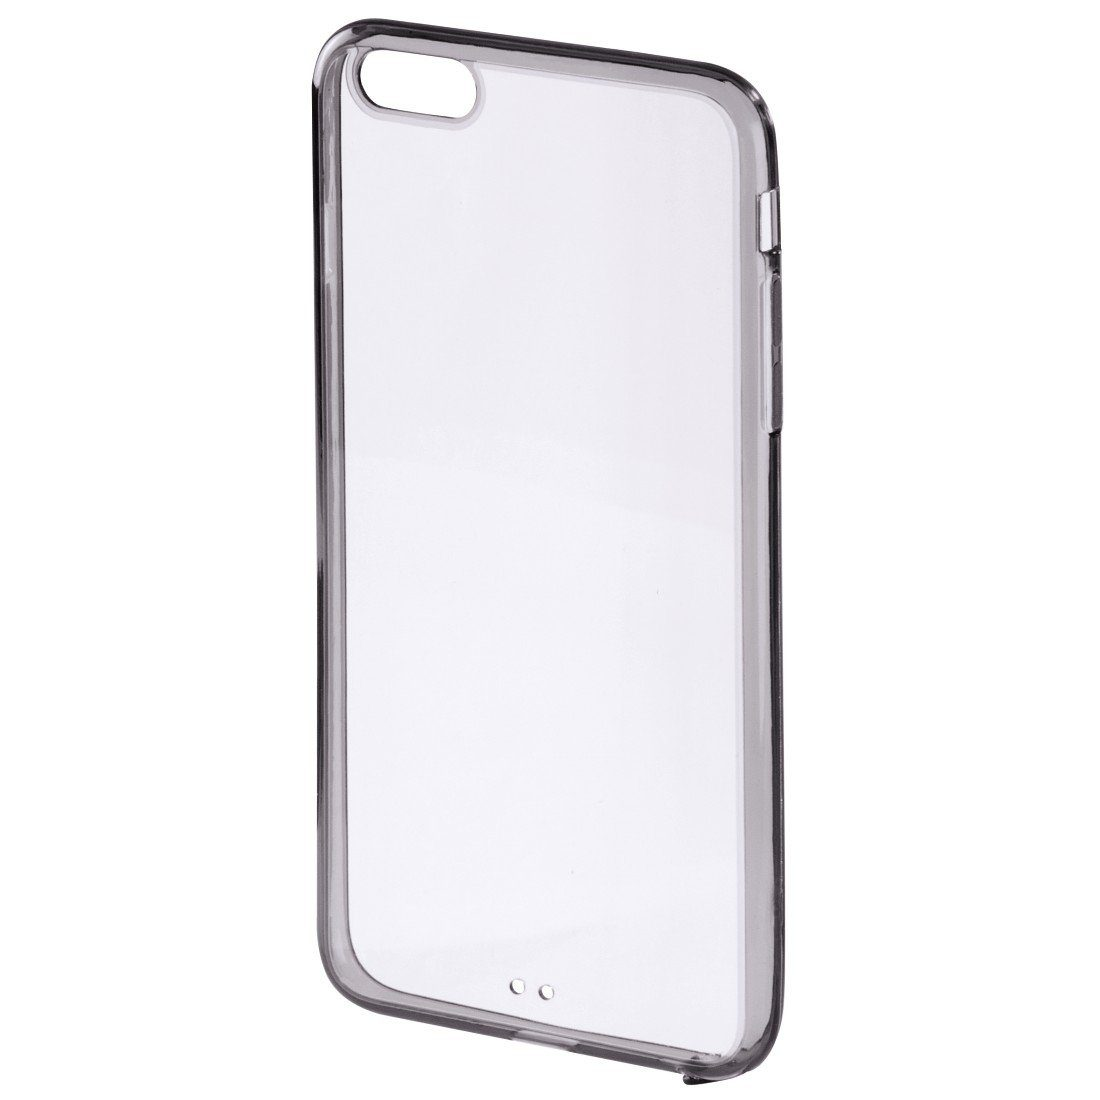 Hama Cover Frame für Apple iPhone 6 Plus/6s Plus, Schwarz